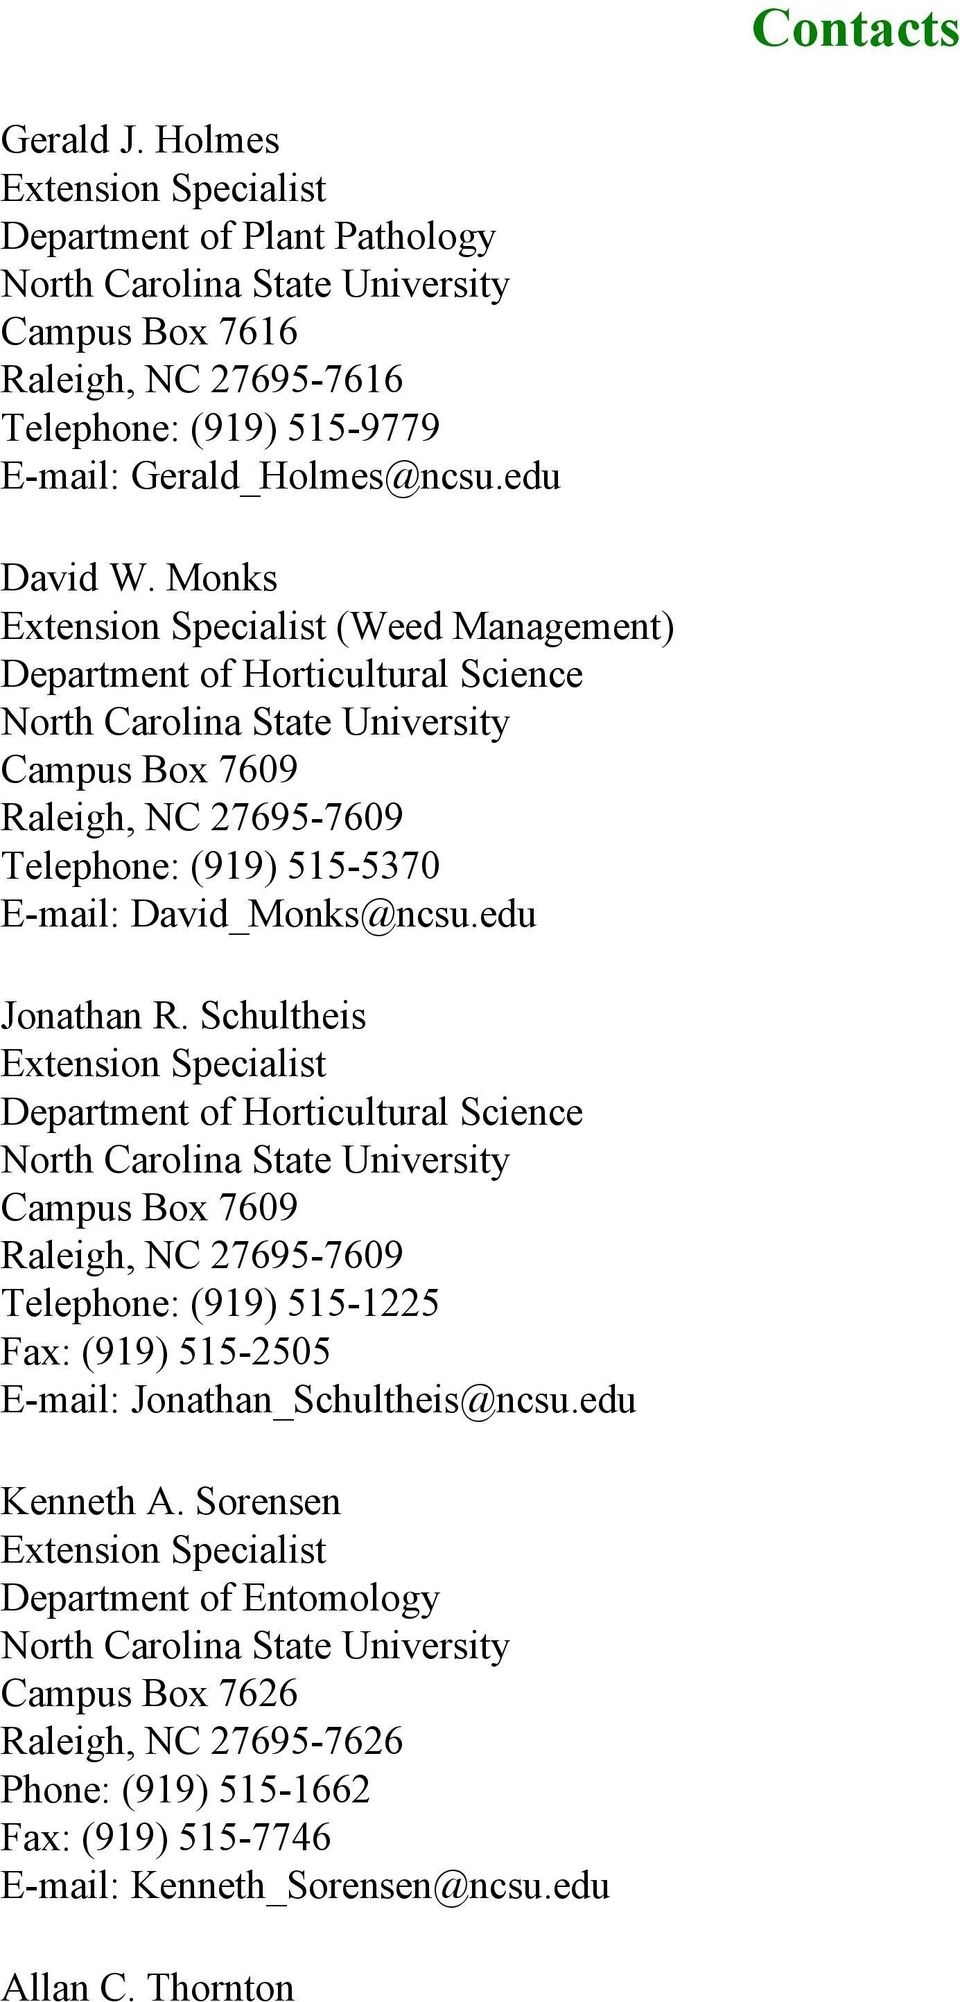 Monks Extension Specialist (Weed Management) Department of Horticultural Science North Carolina State University Campus Box 7609 Raleigh, NC 27695-7609 Telephone: (919) 515-5370 E-mail: